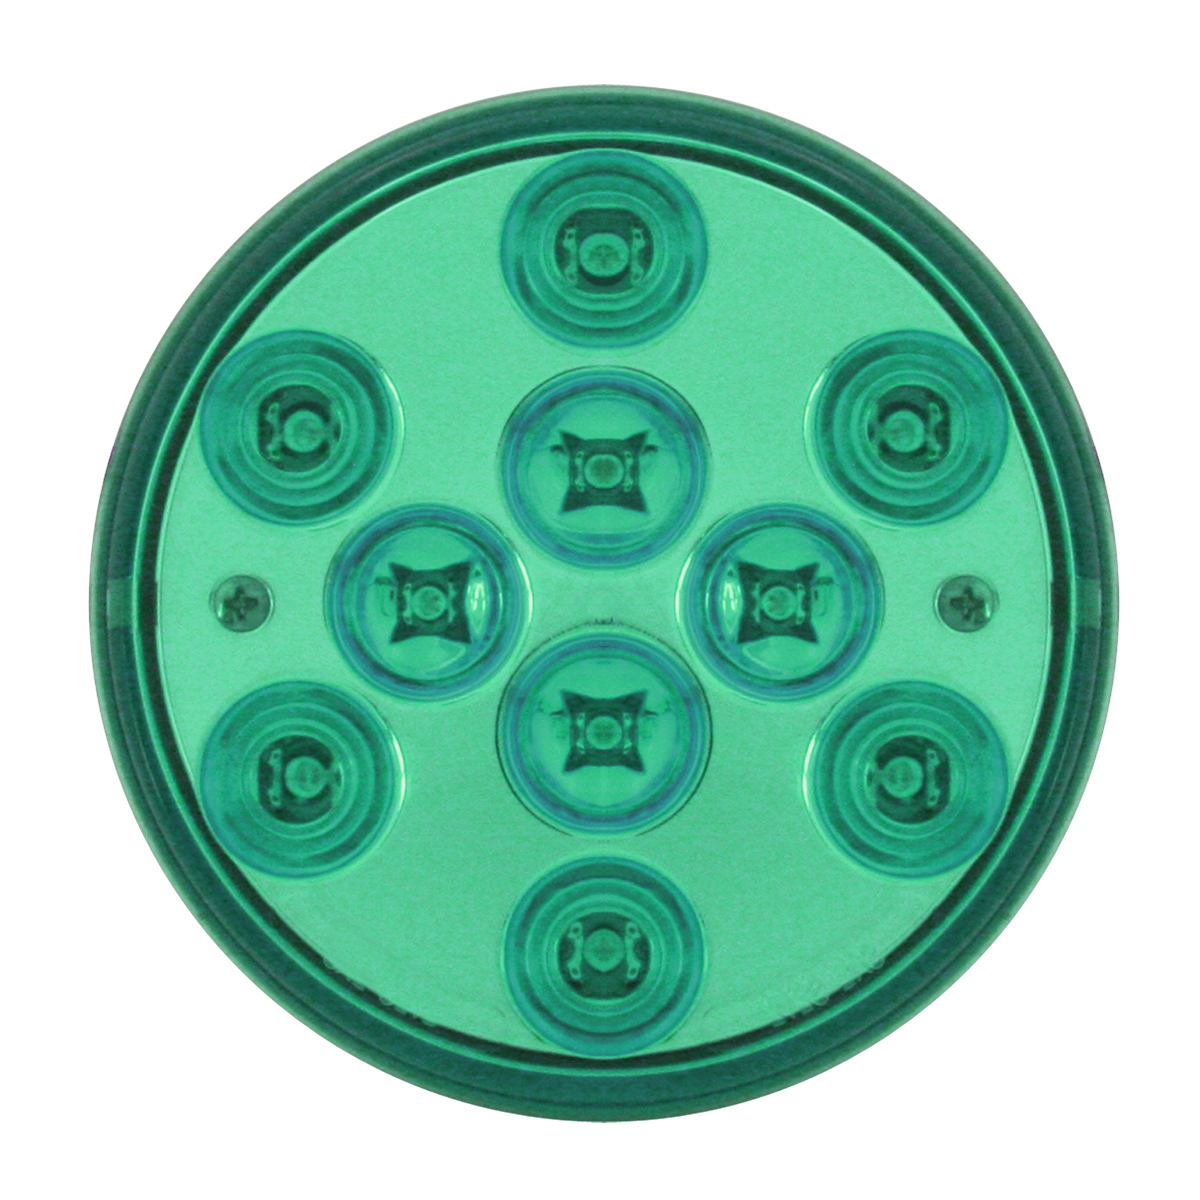 "82272 4"" Mega 10 Plus LED Light in Green/Green"